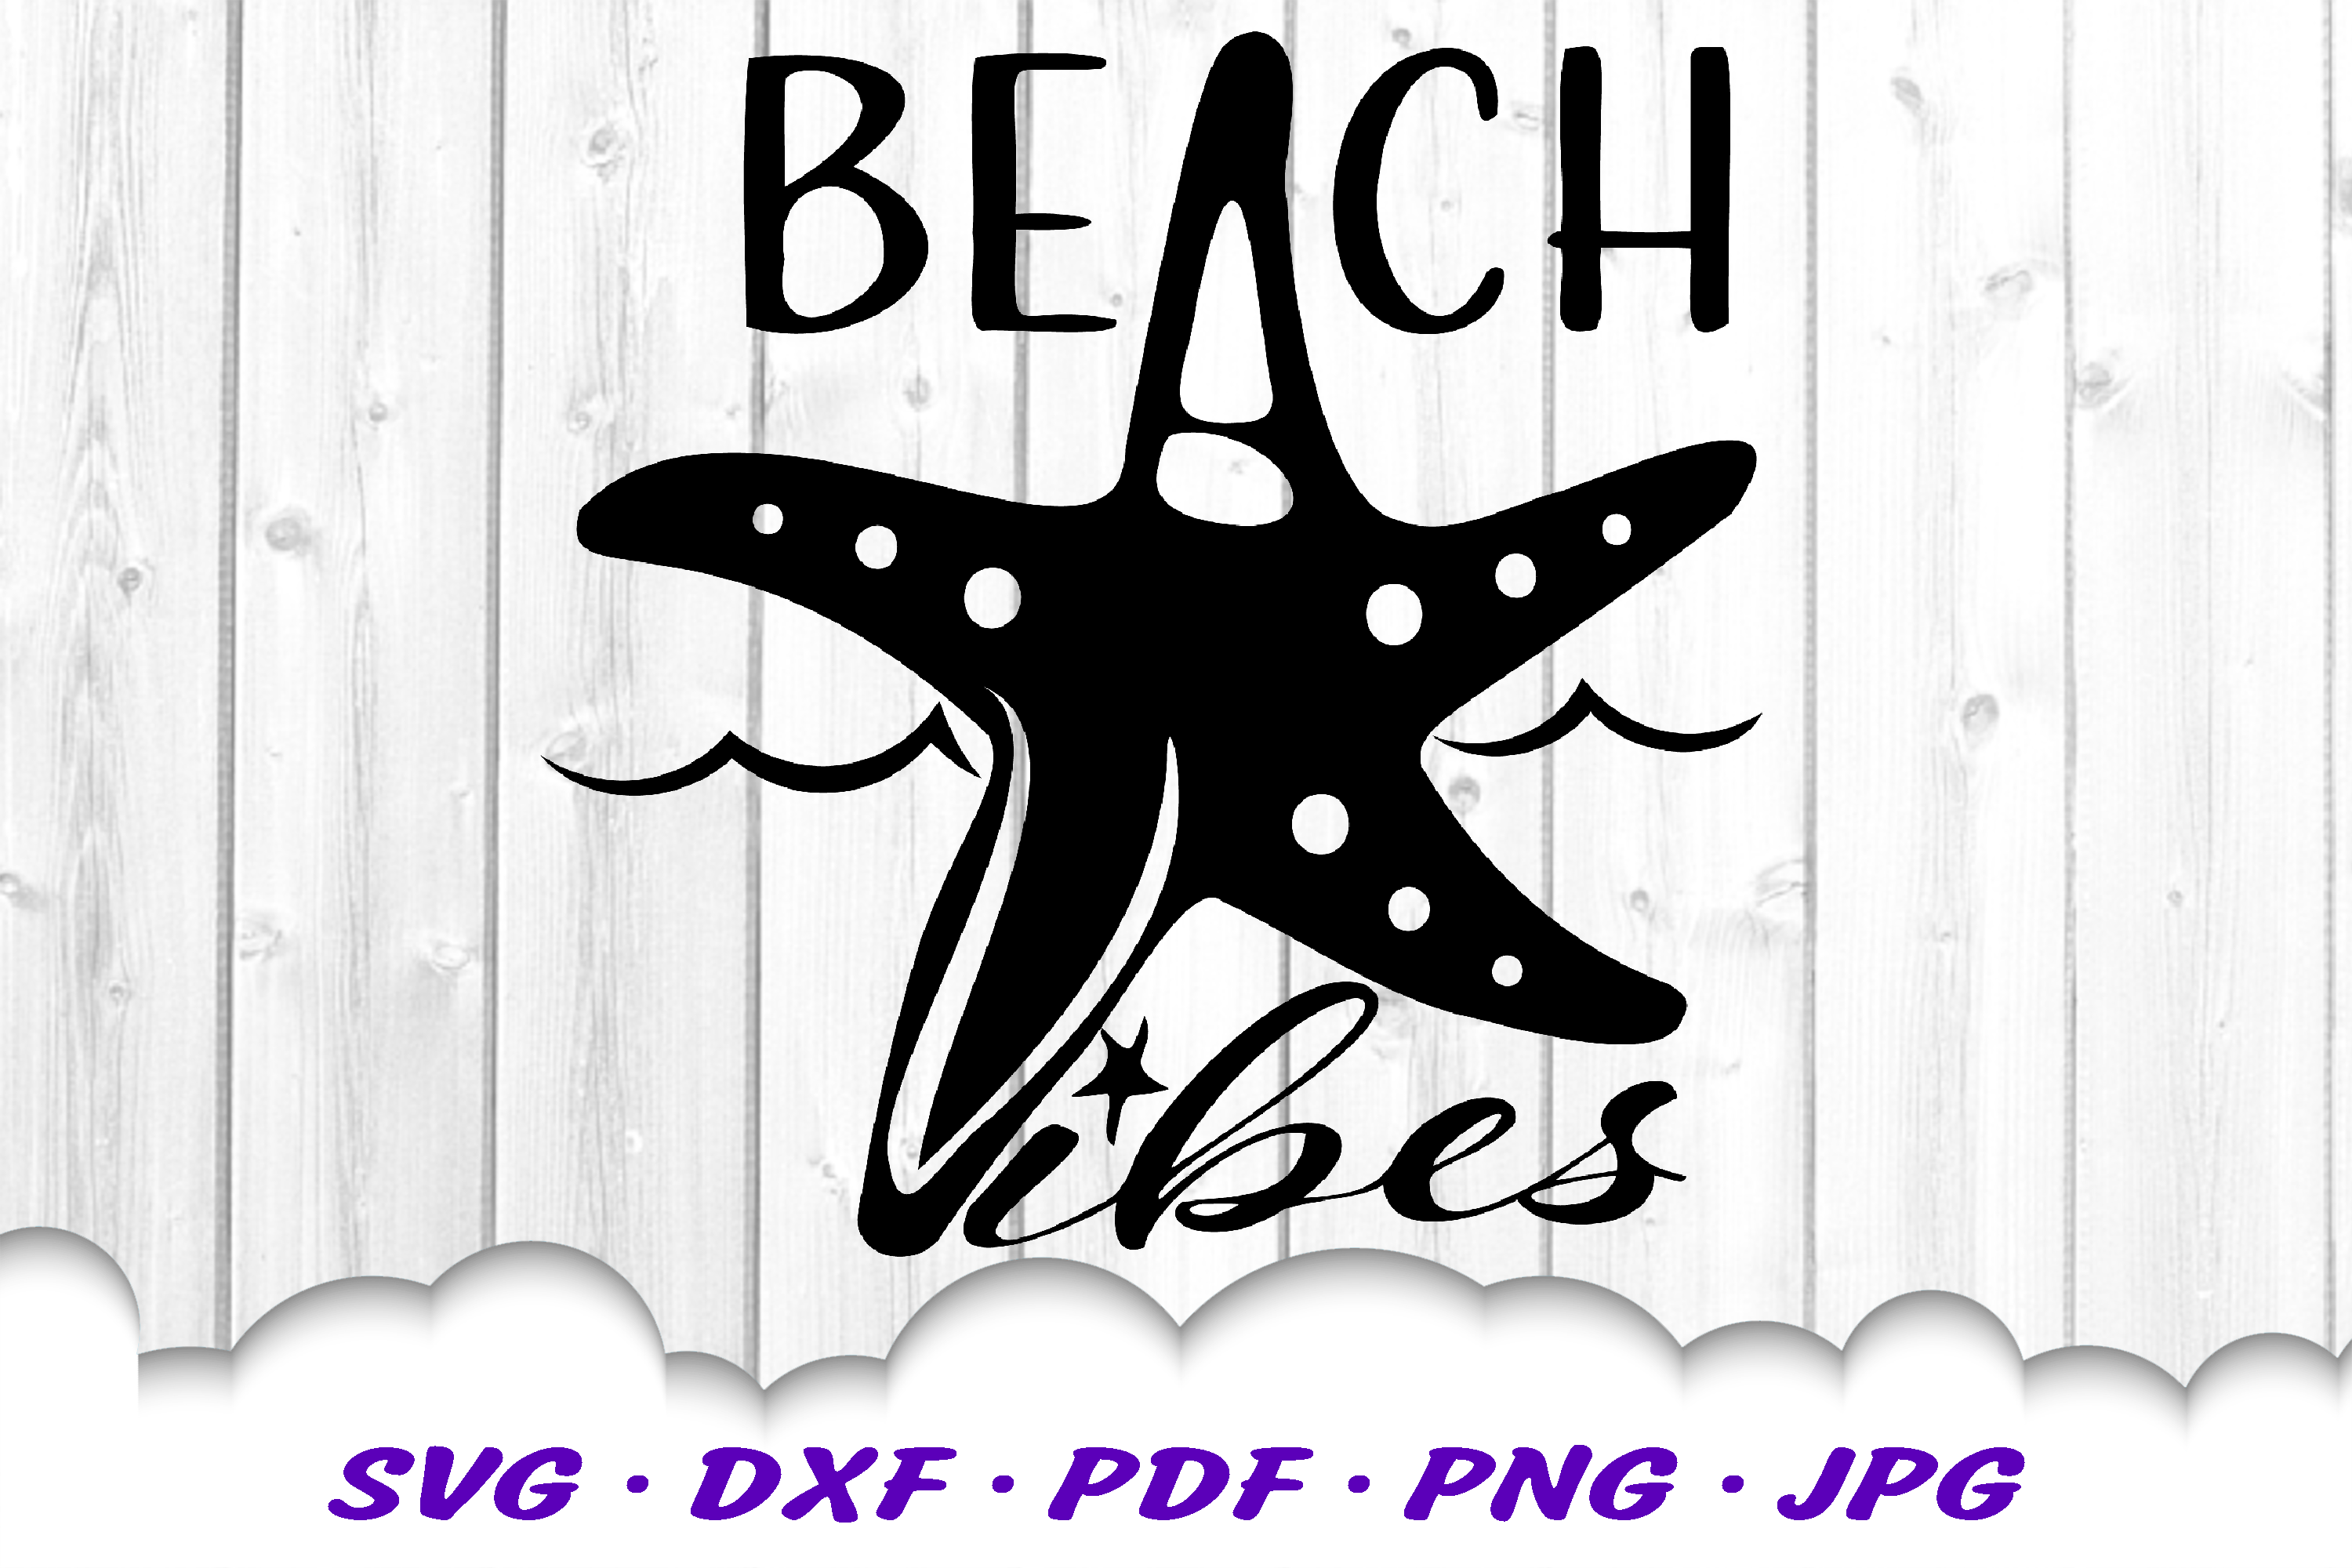 Beach Vibes Starfish SVG DXF Cut Files example image 2